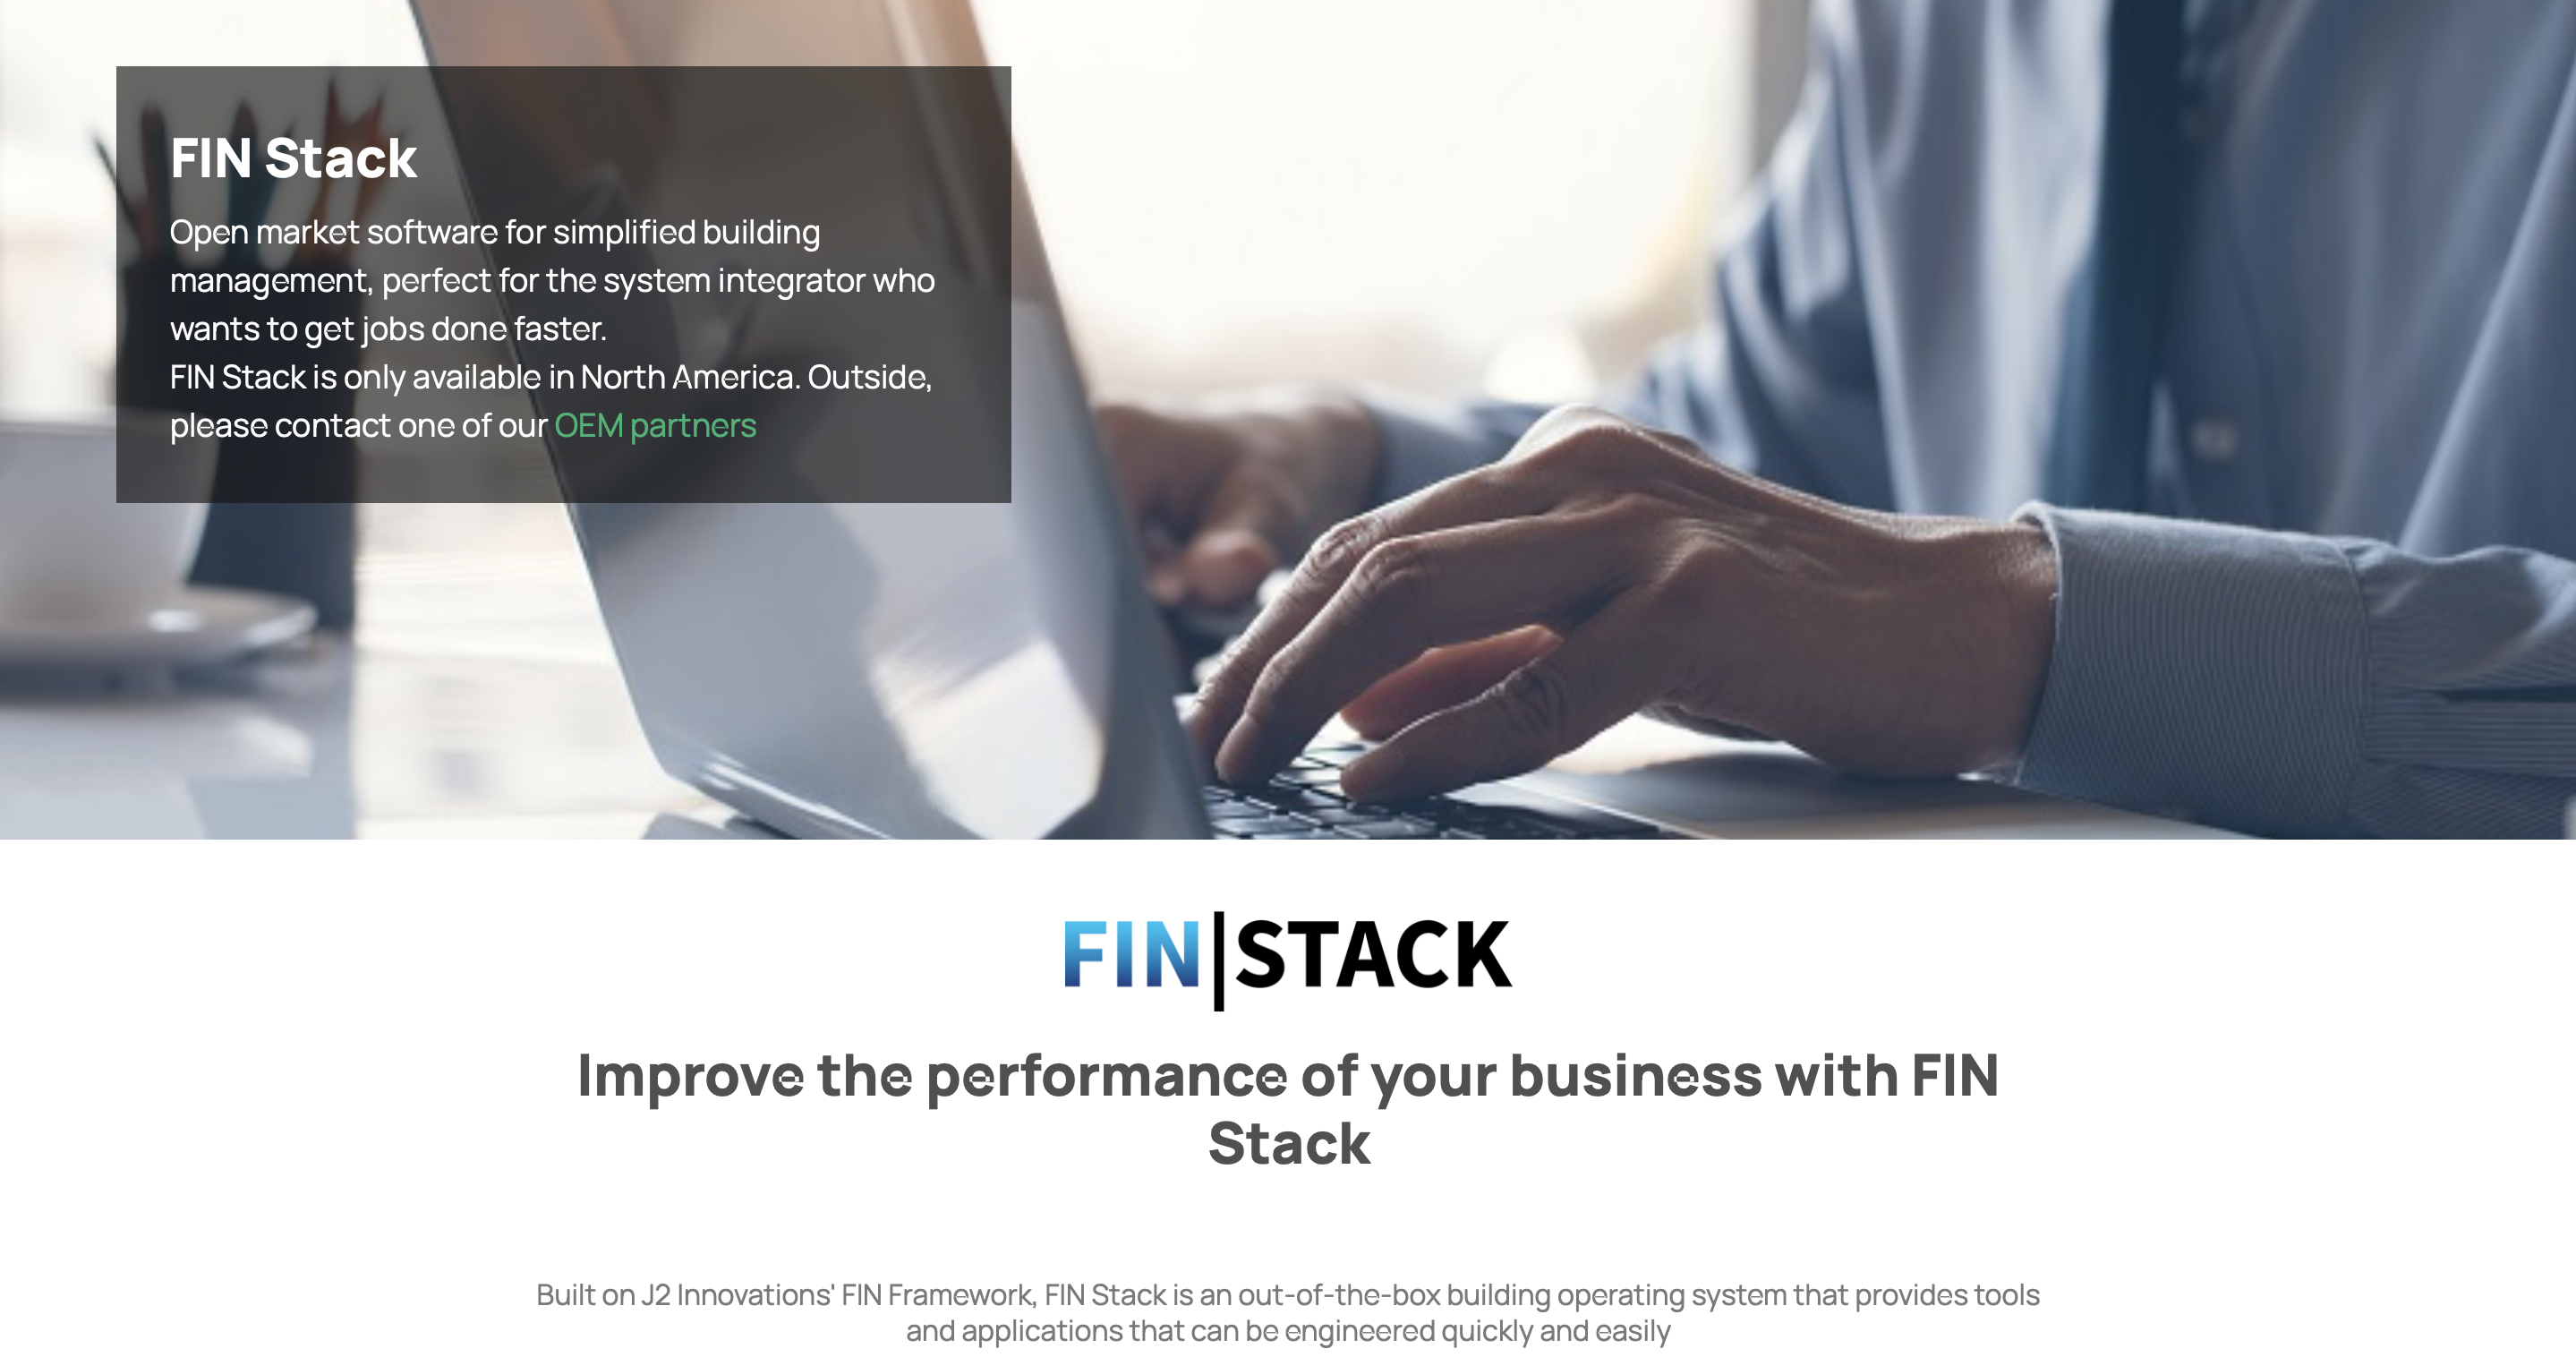 FIN Stack Webpage